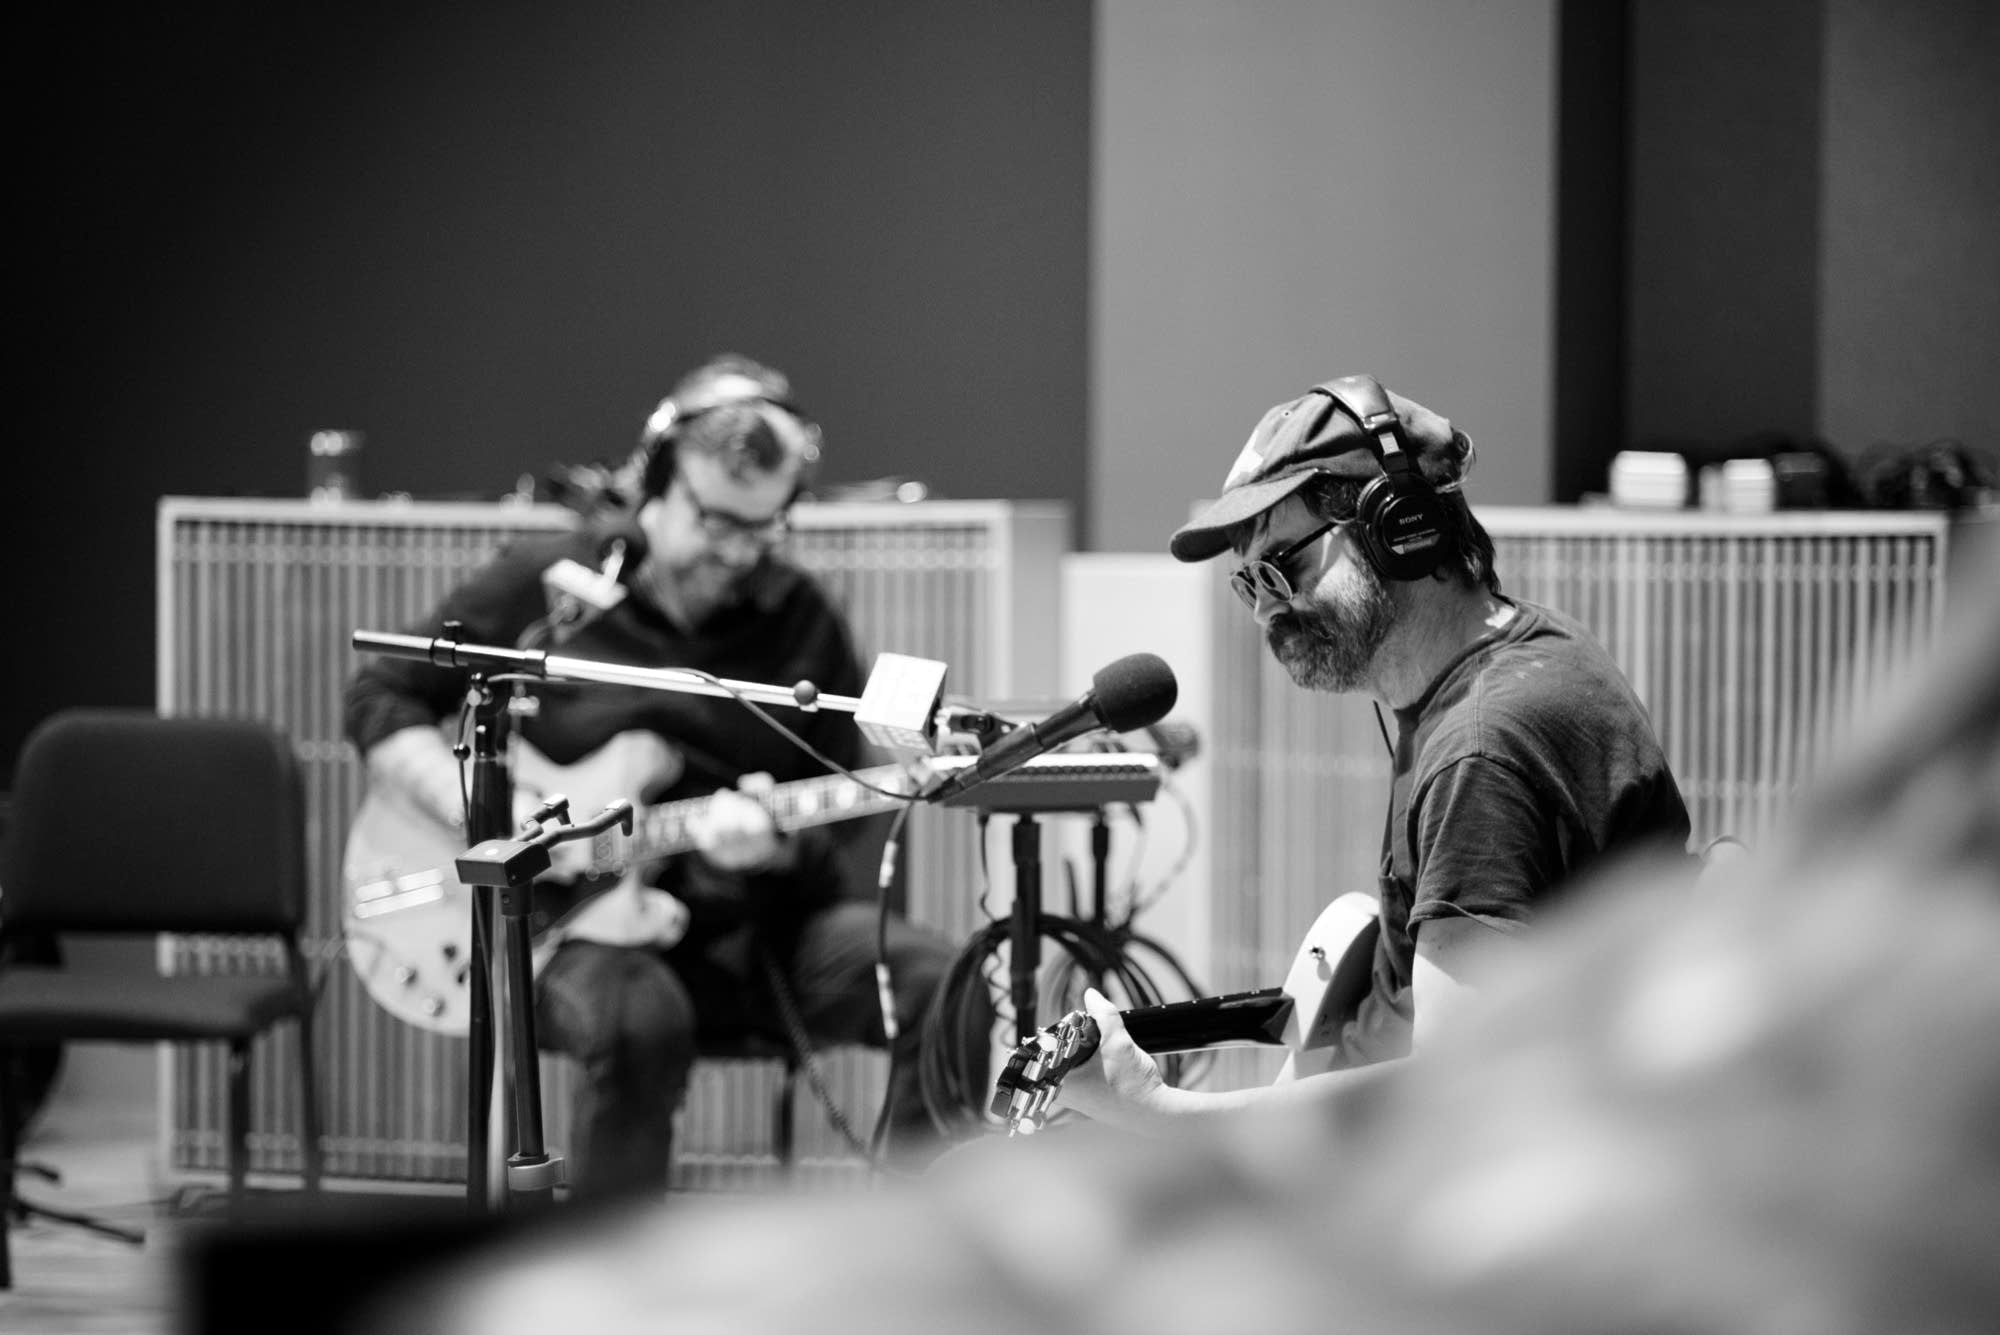 Eels perform in The Current studio